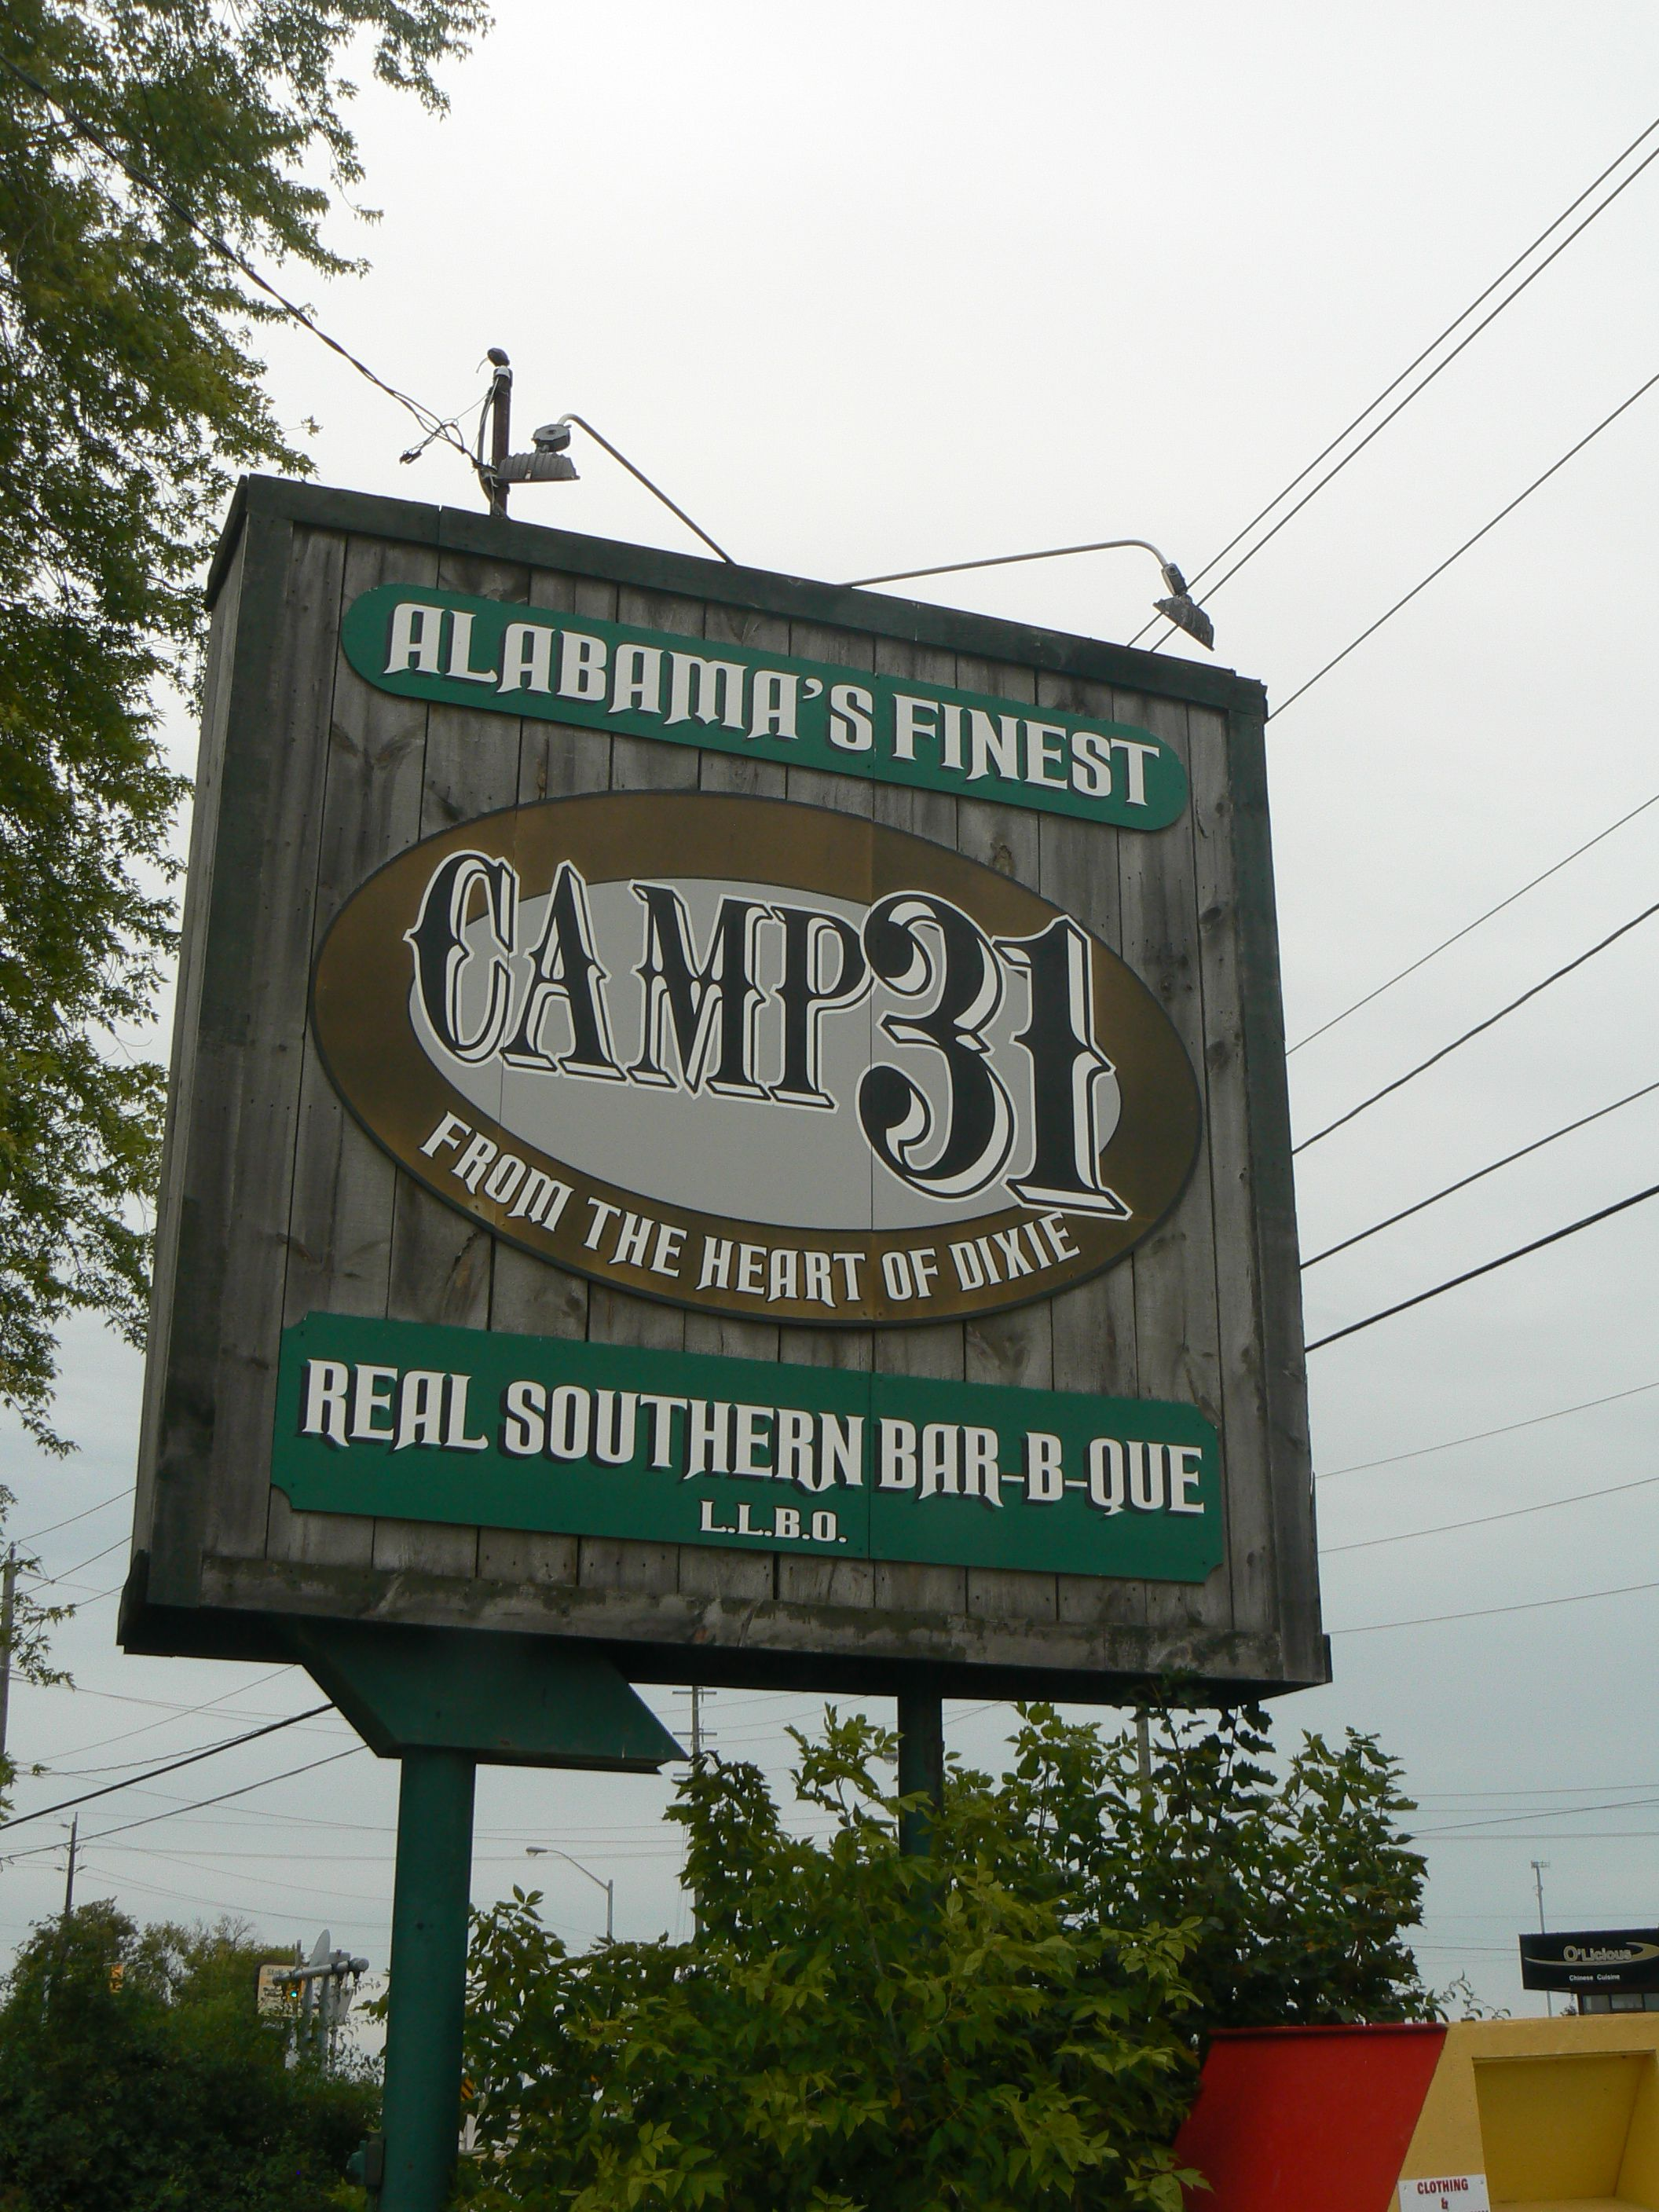 Camp 31 Bbq In Paris Ontario Canada Has Great Food With Images Bar B Que Camping Great Places